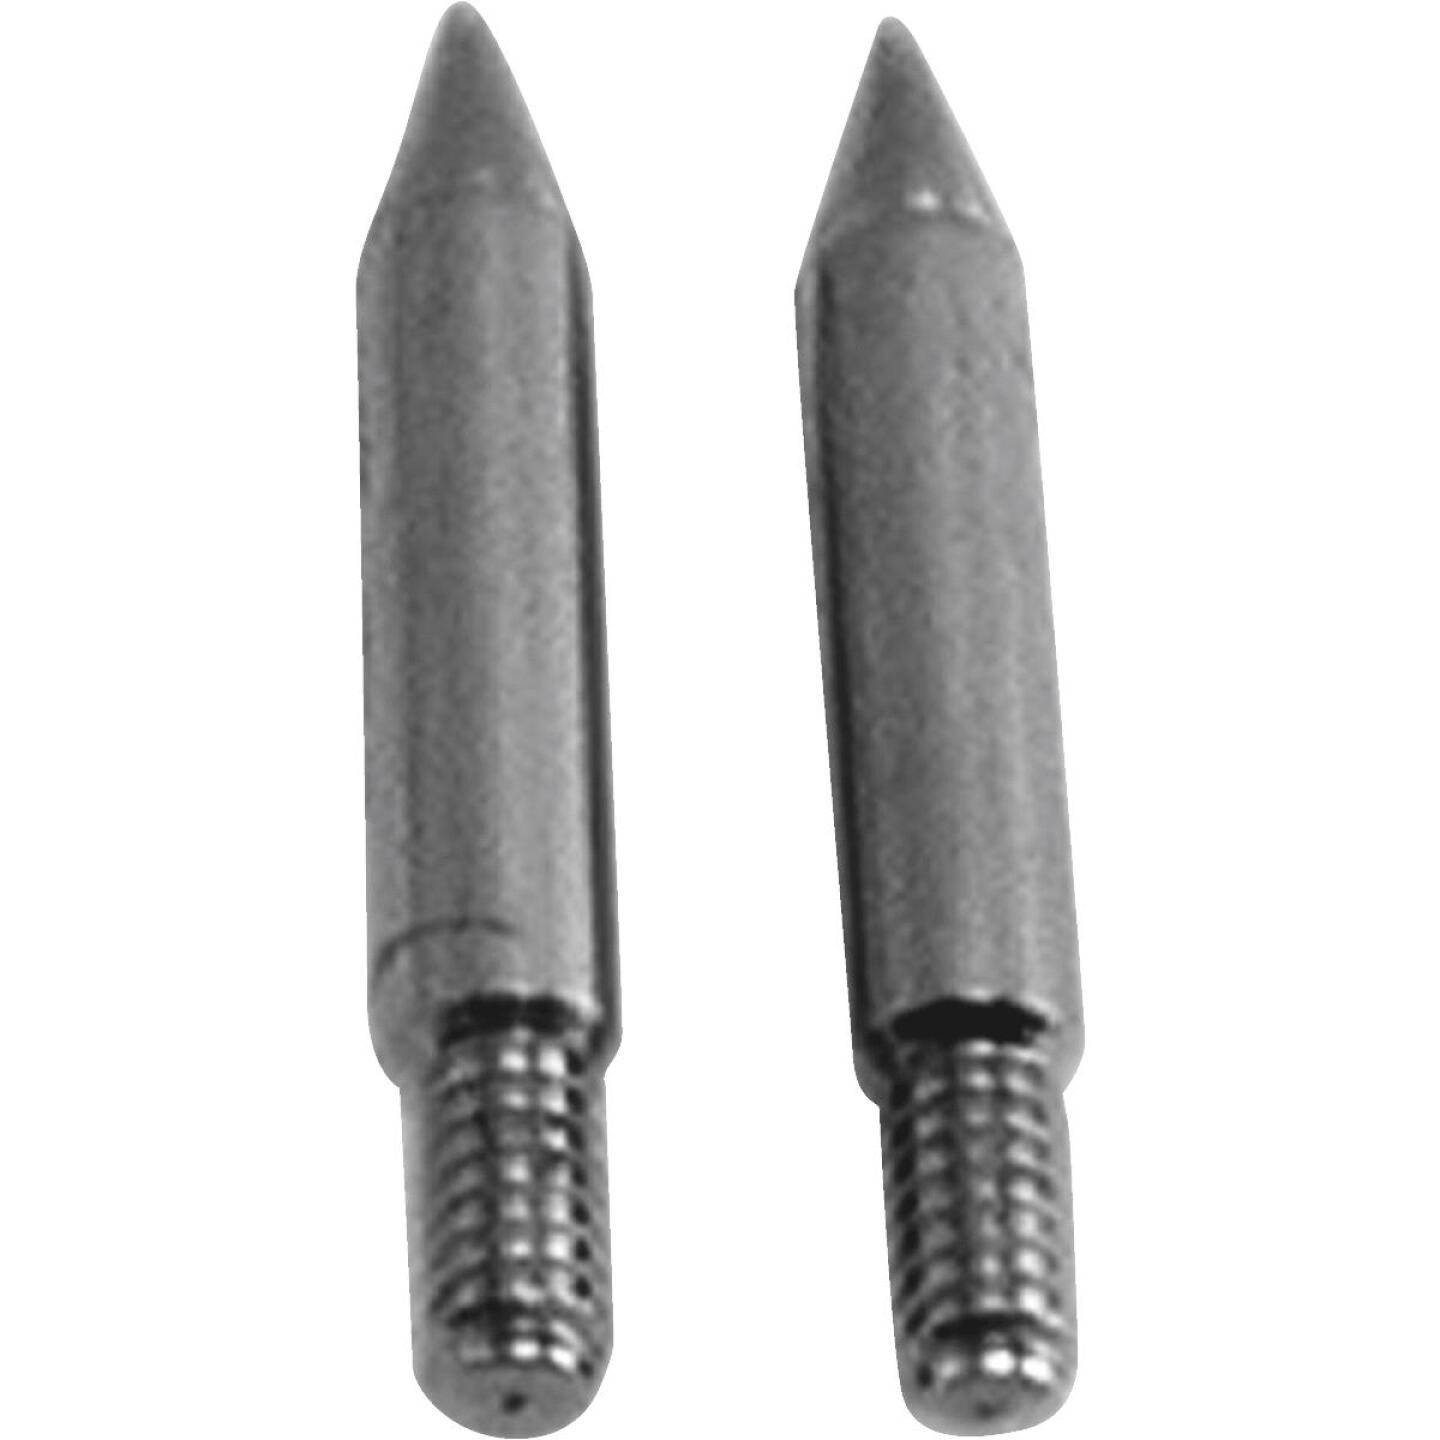 Wall Lenk Pointed Replacement Soldering Iron Tip (2-Pack) Image 1